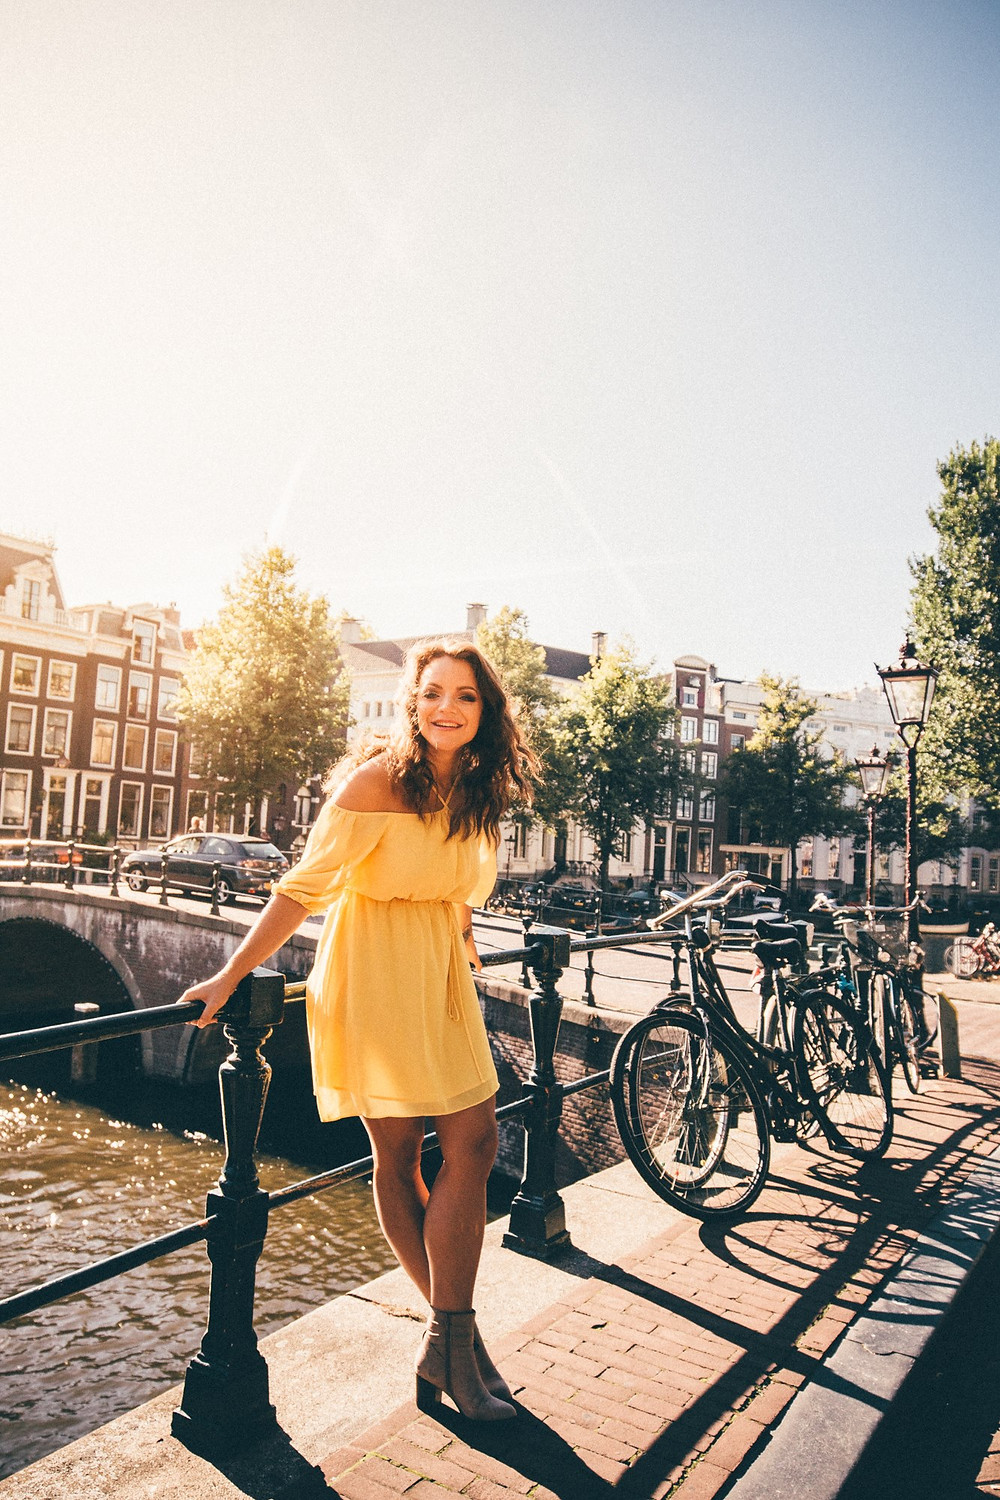 A girl in Amsterdam